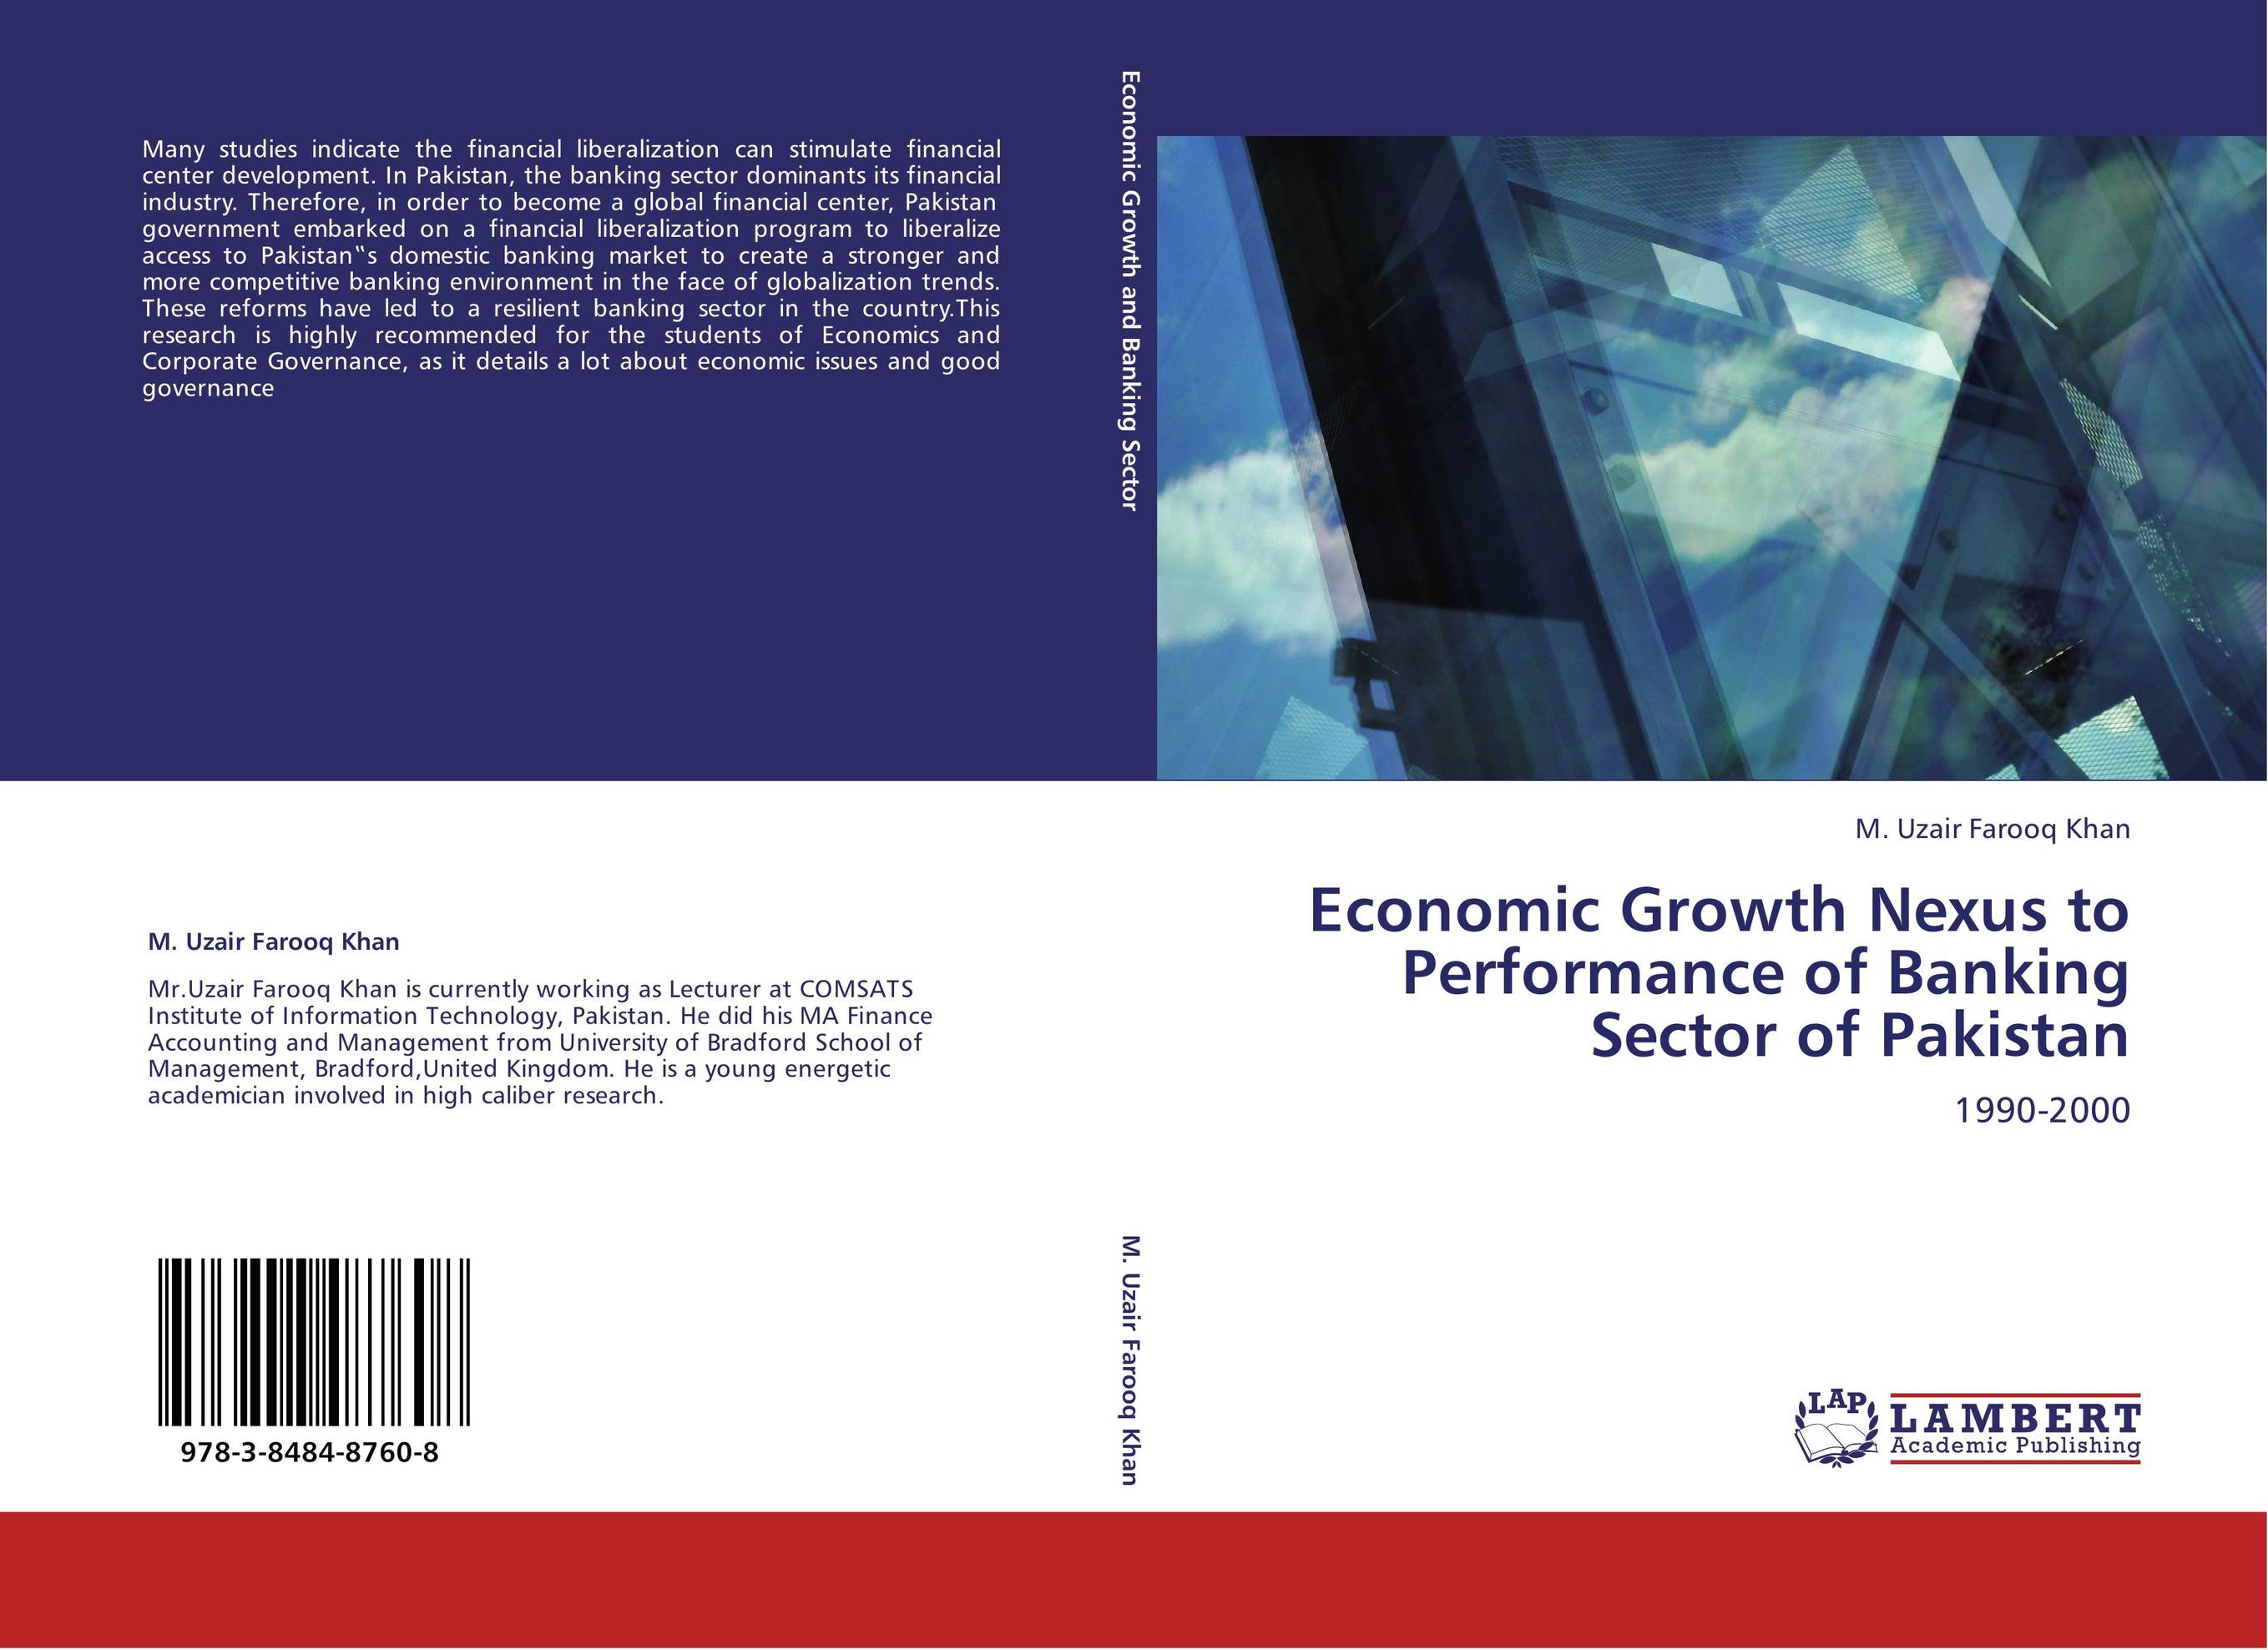 Economic Growth Nexus to Performance of Banking Sector of Pakistan corporate governance and firm value